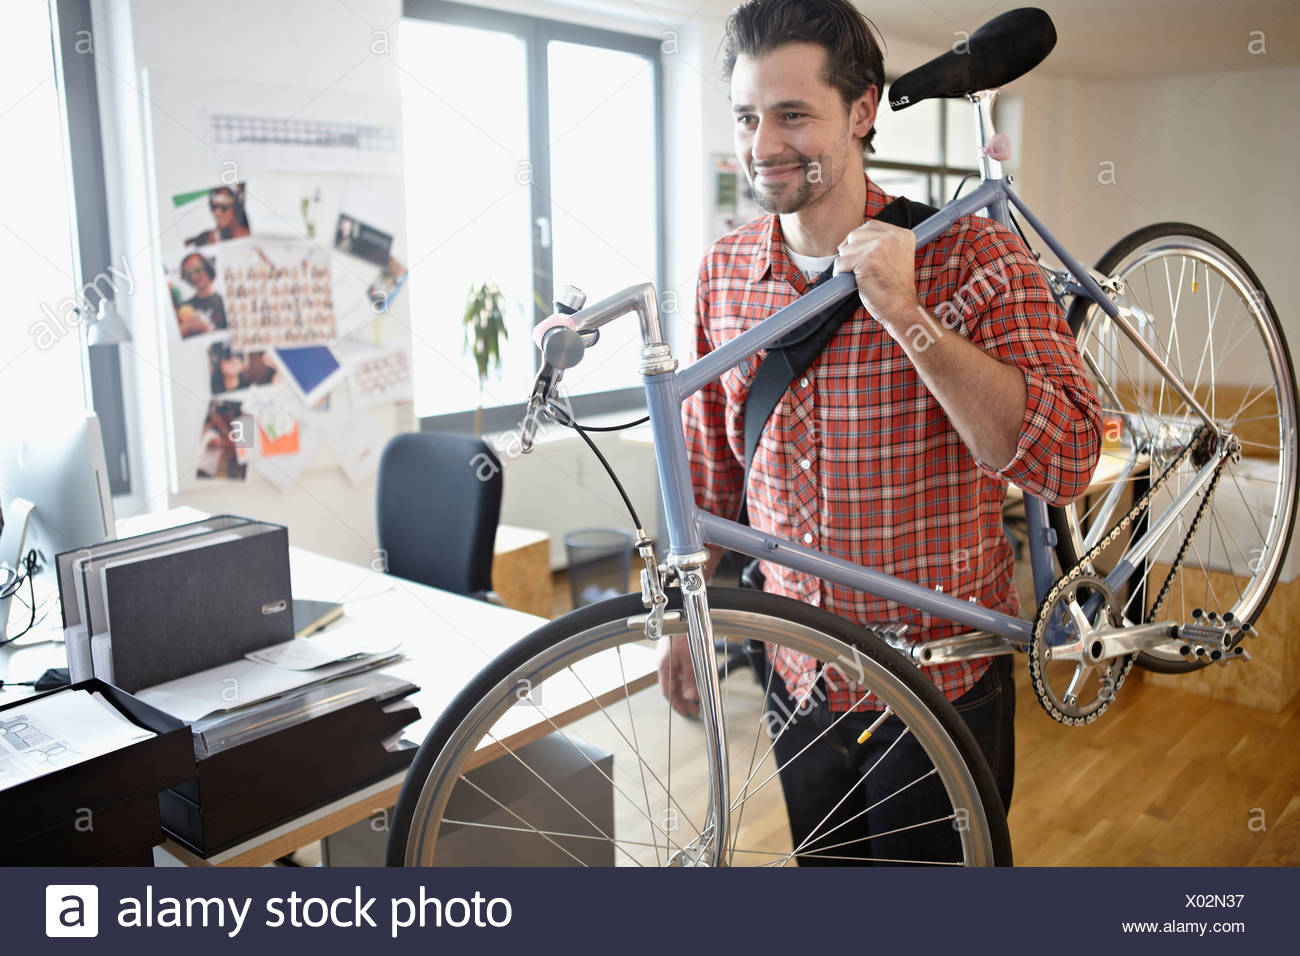 Germany, Cologne, young man carrying bicycle, smiling Photo Stock